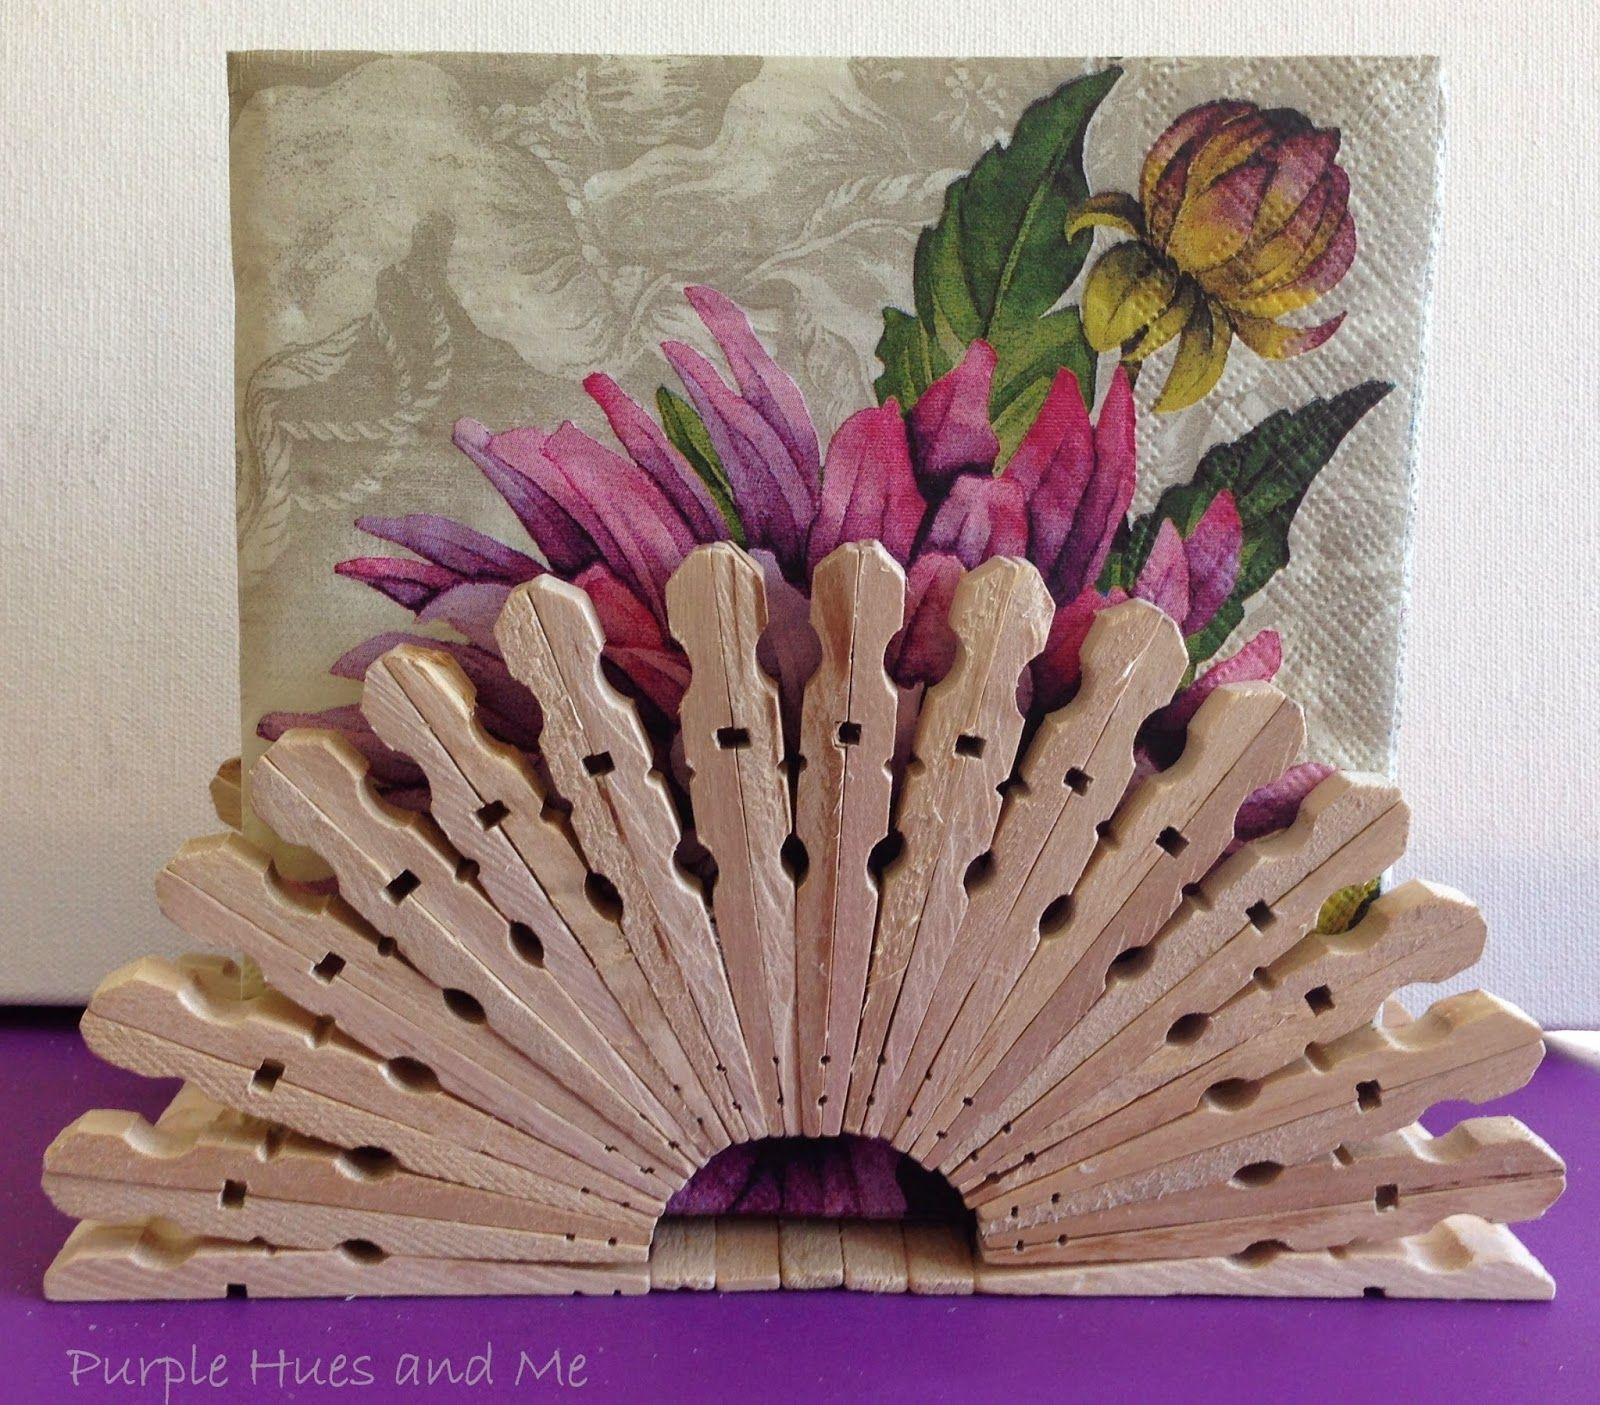 Clothespin Napkin Holder - Purple Hues and Me | *BUILDING ...